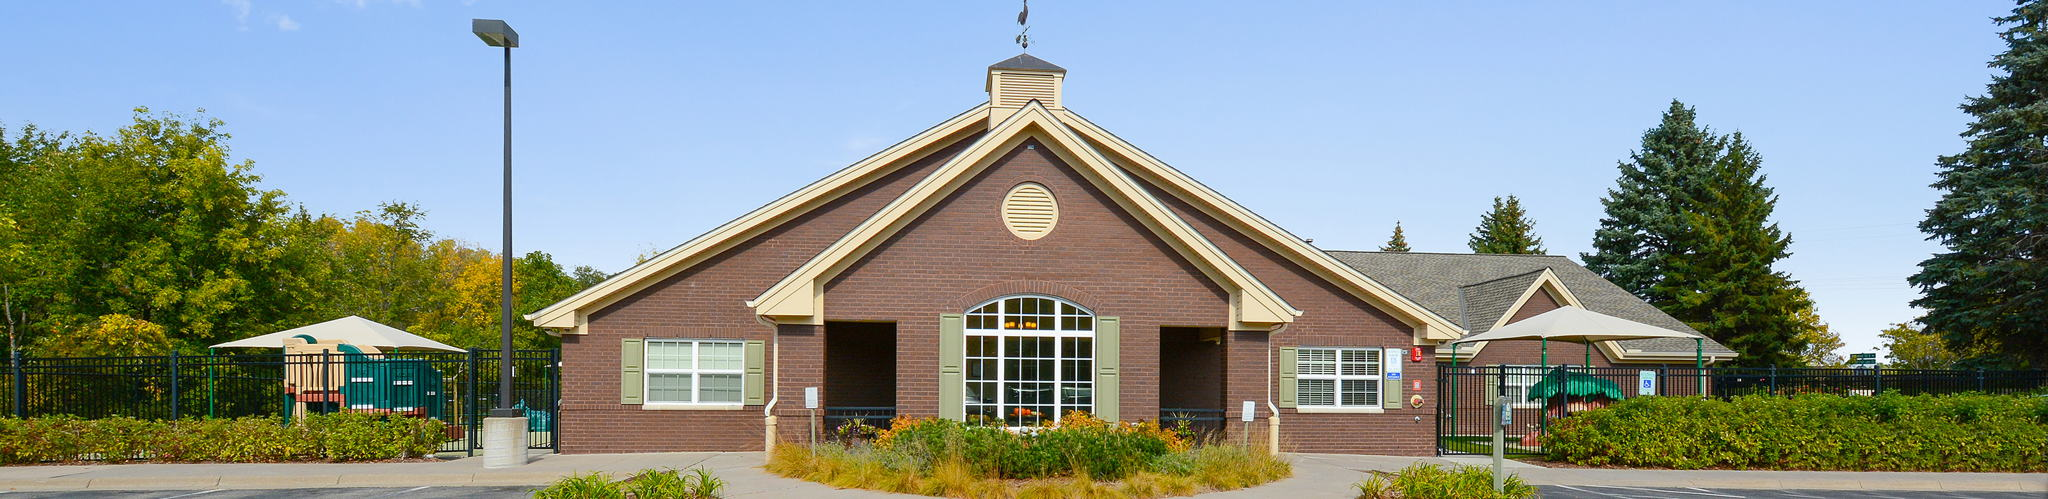 Exterior of a Primrose School of Maple Grove